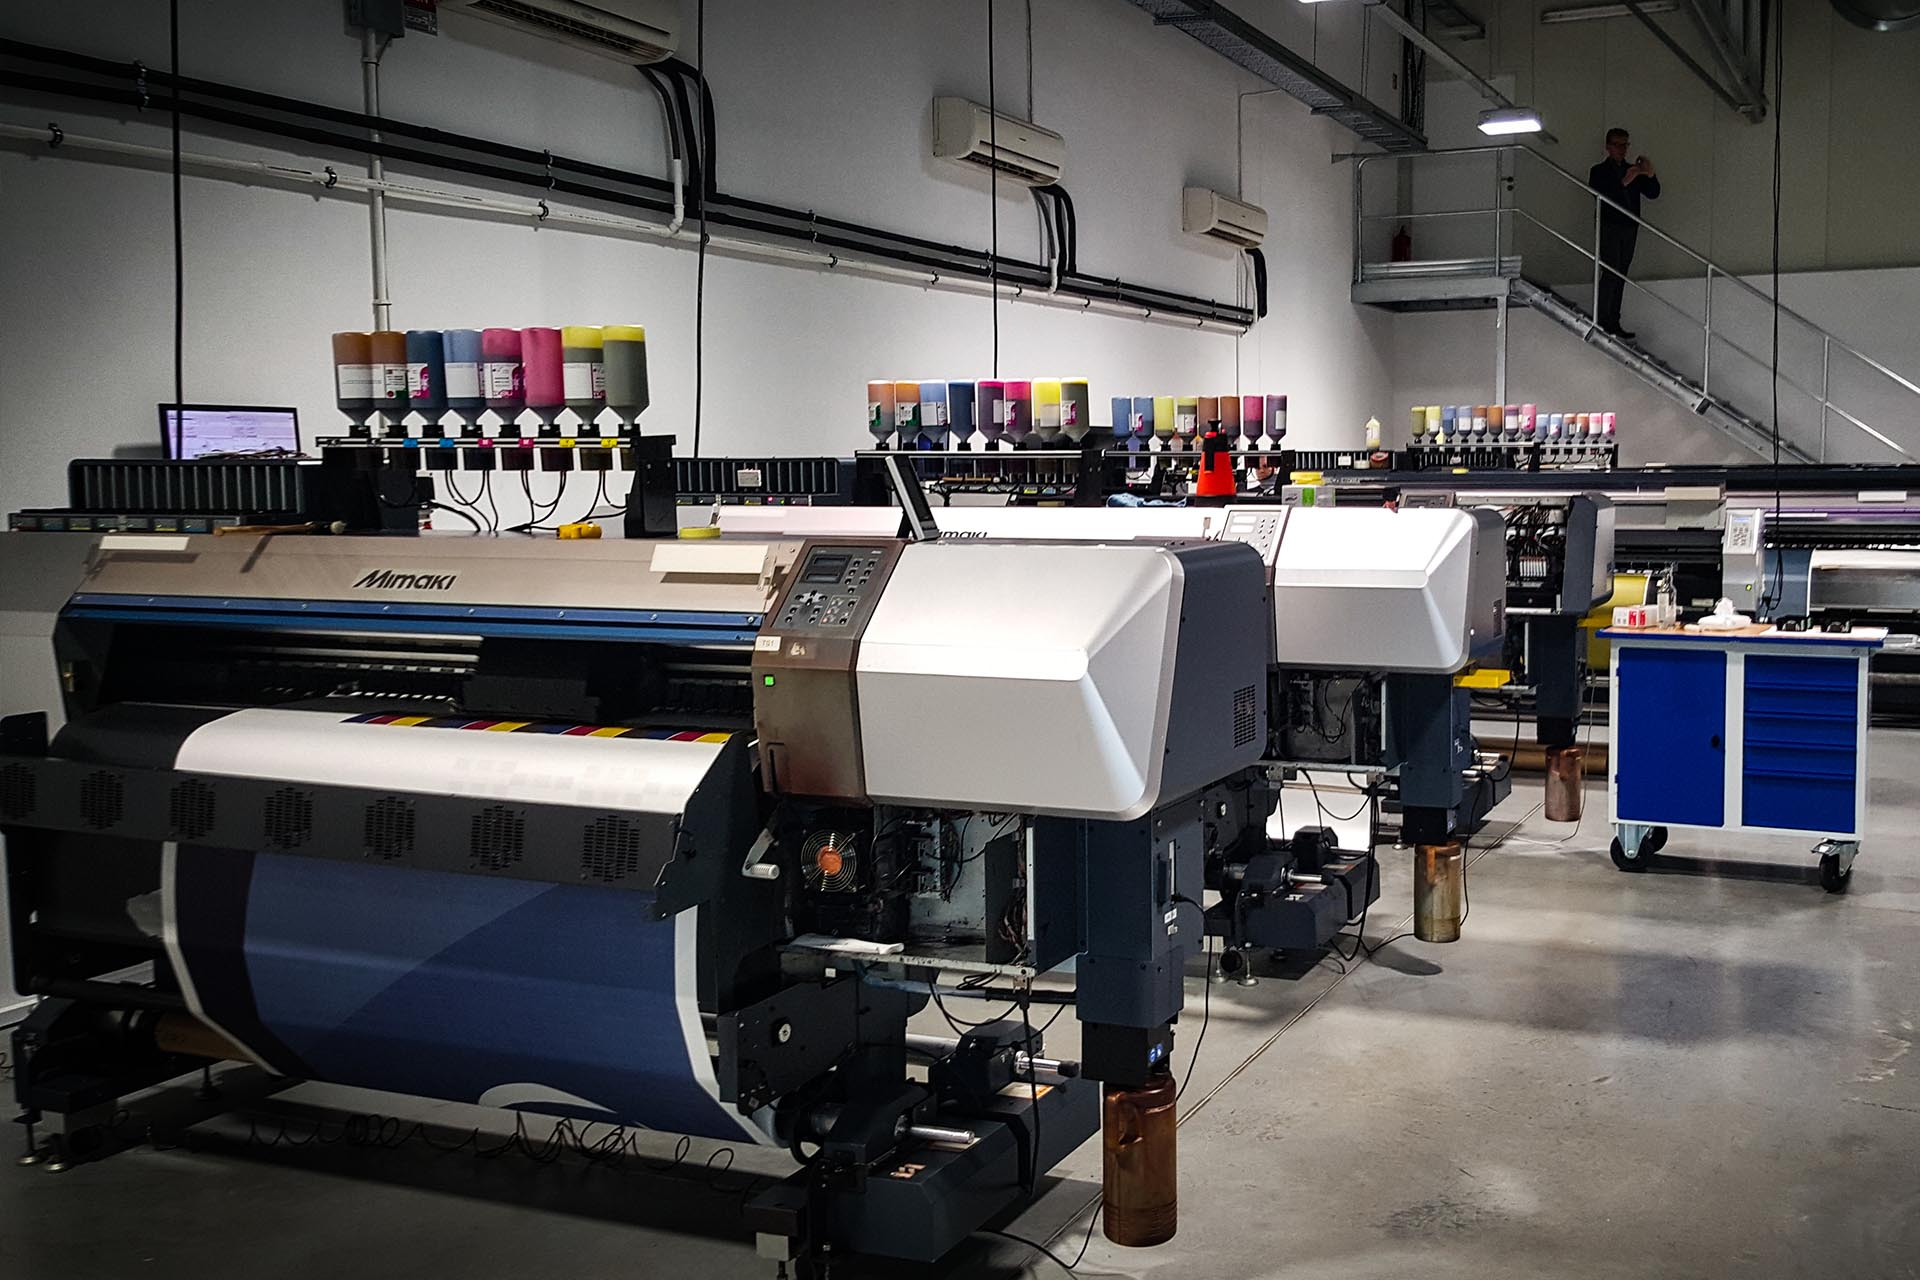 Faber Exposize Printers